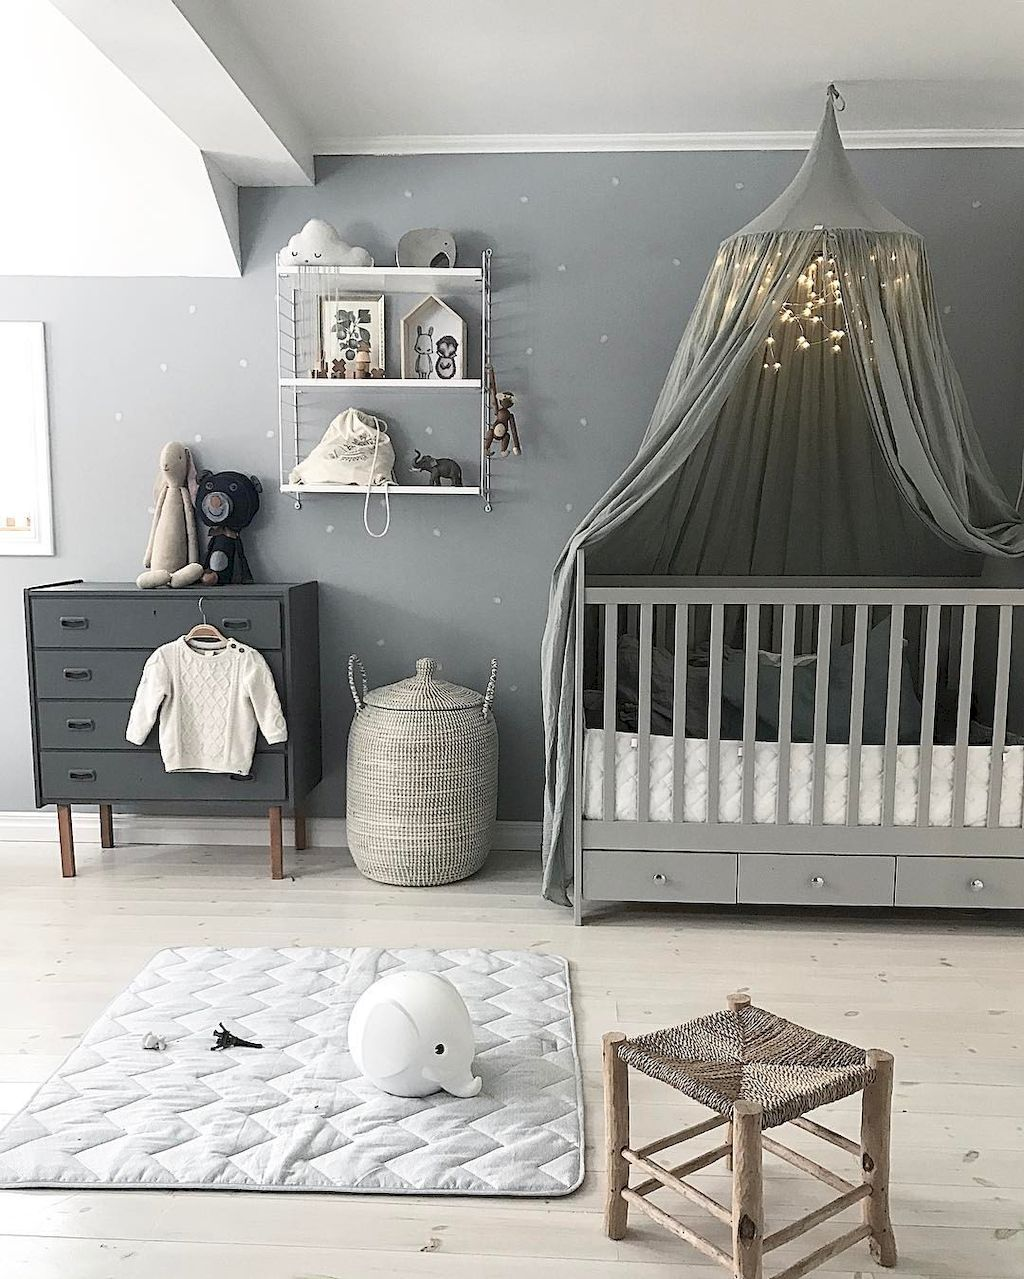 Simply Decor Baby Nursery 16 Baby Boy Room Nursery Nursery Room Boy Baby Boy Nursery Room Design